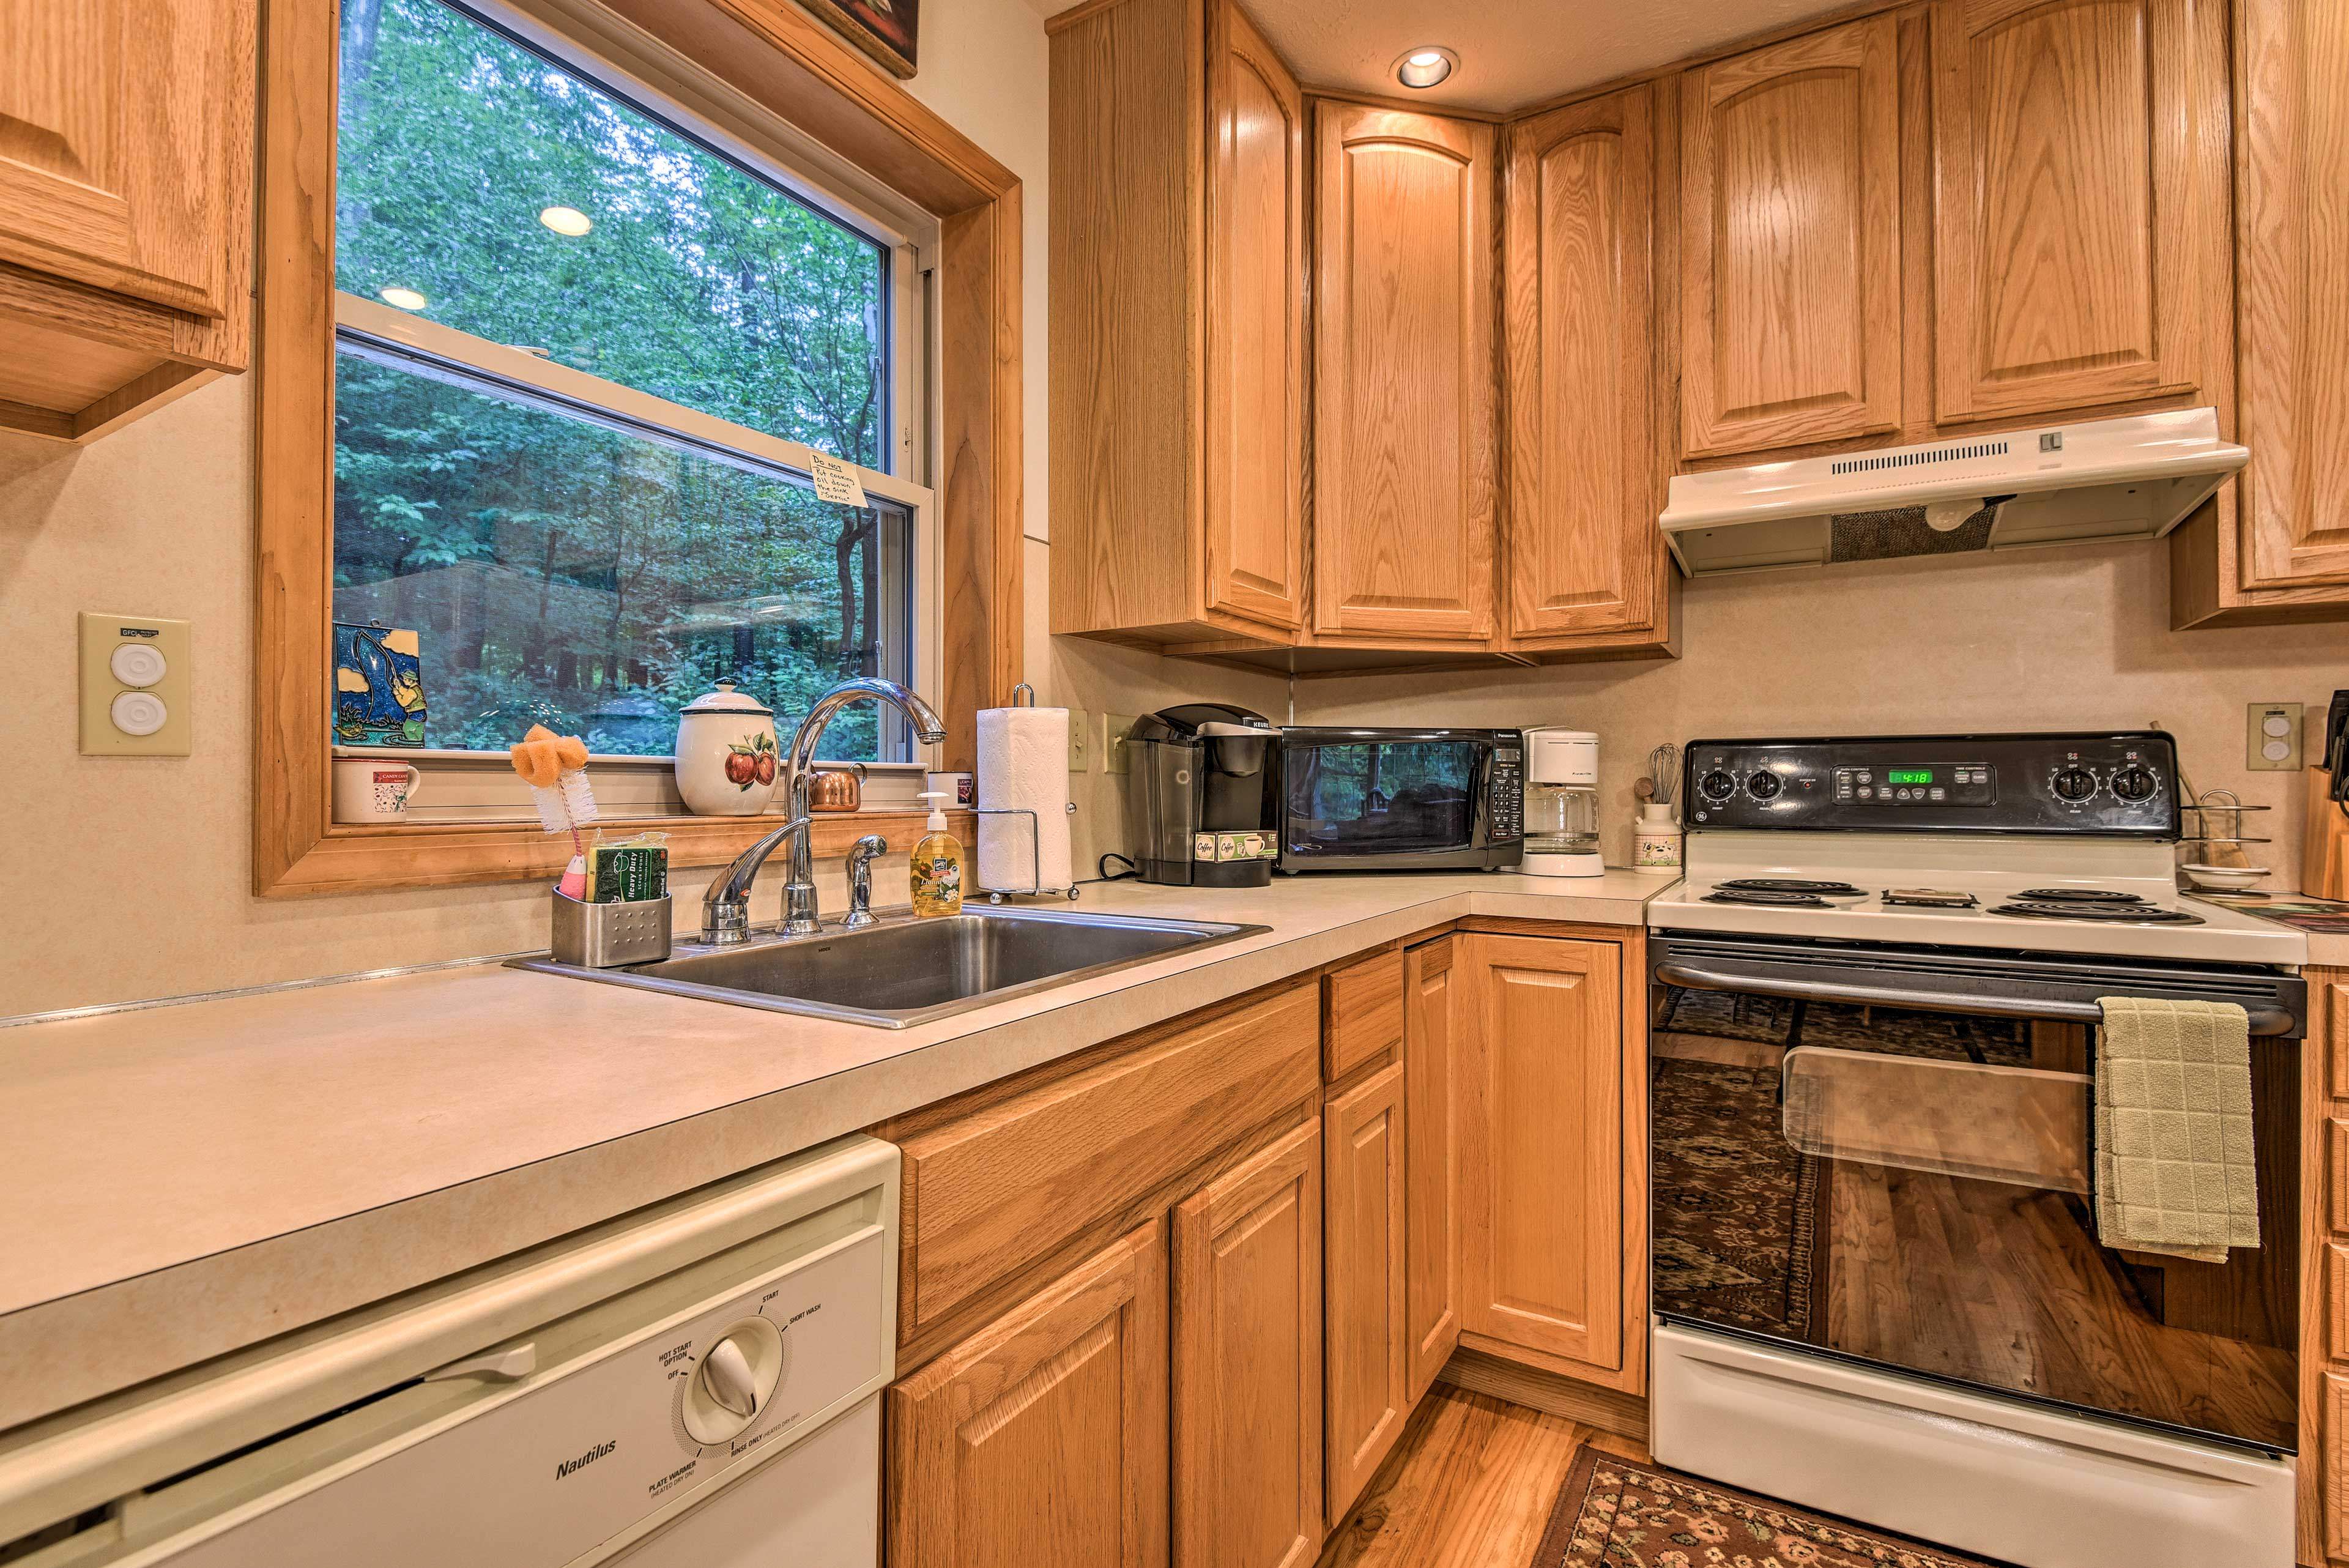 The kitchen is fully equipped with all appliances necessary.